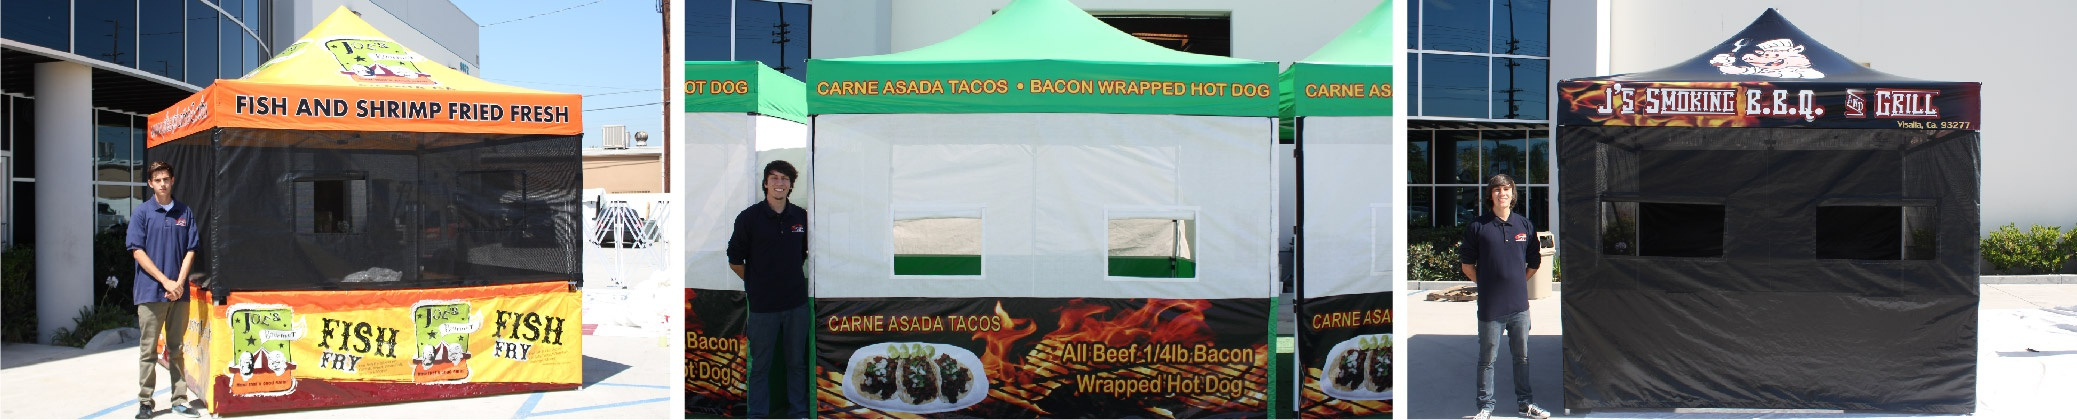 Various food booth canopies in front of a business.